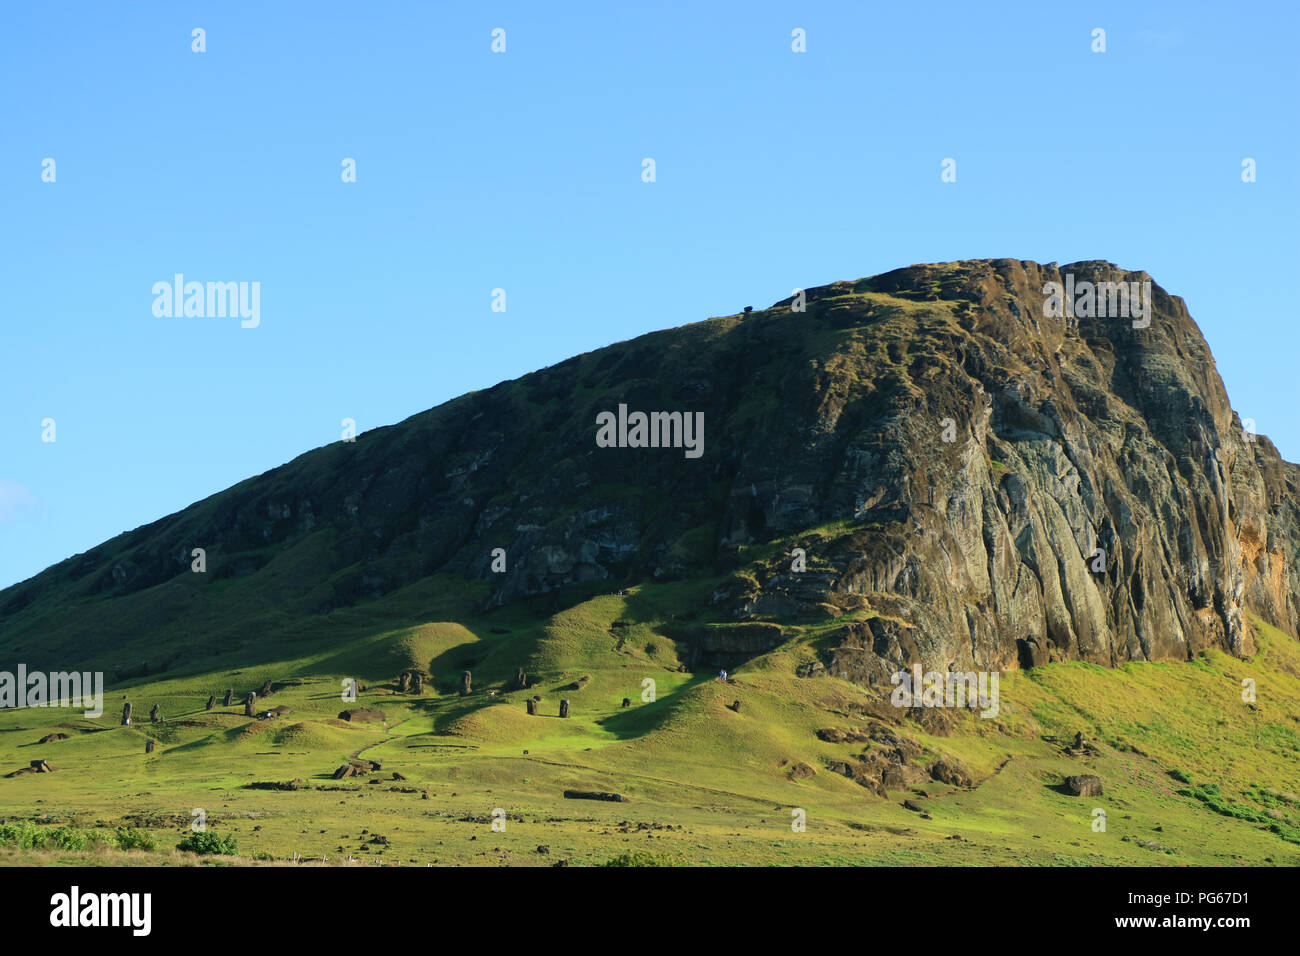 The Rano Raraku volcano, quarry of Moai statue in the ancient time of Easter Island, Archaeological site in Chile, South America - Stock Image